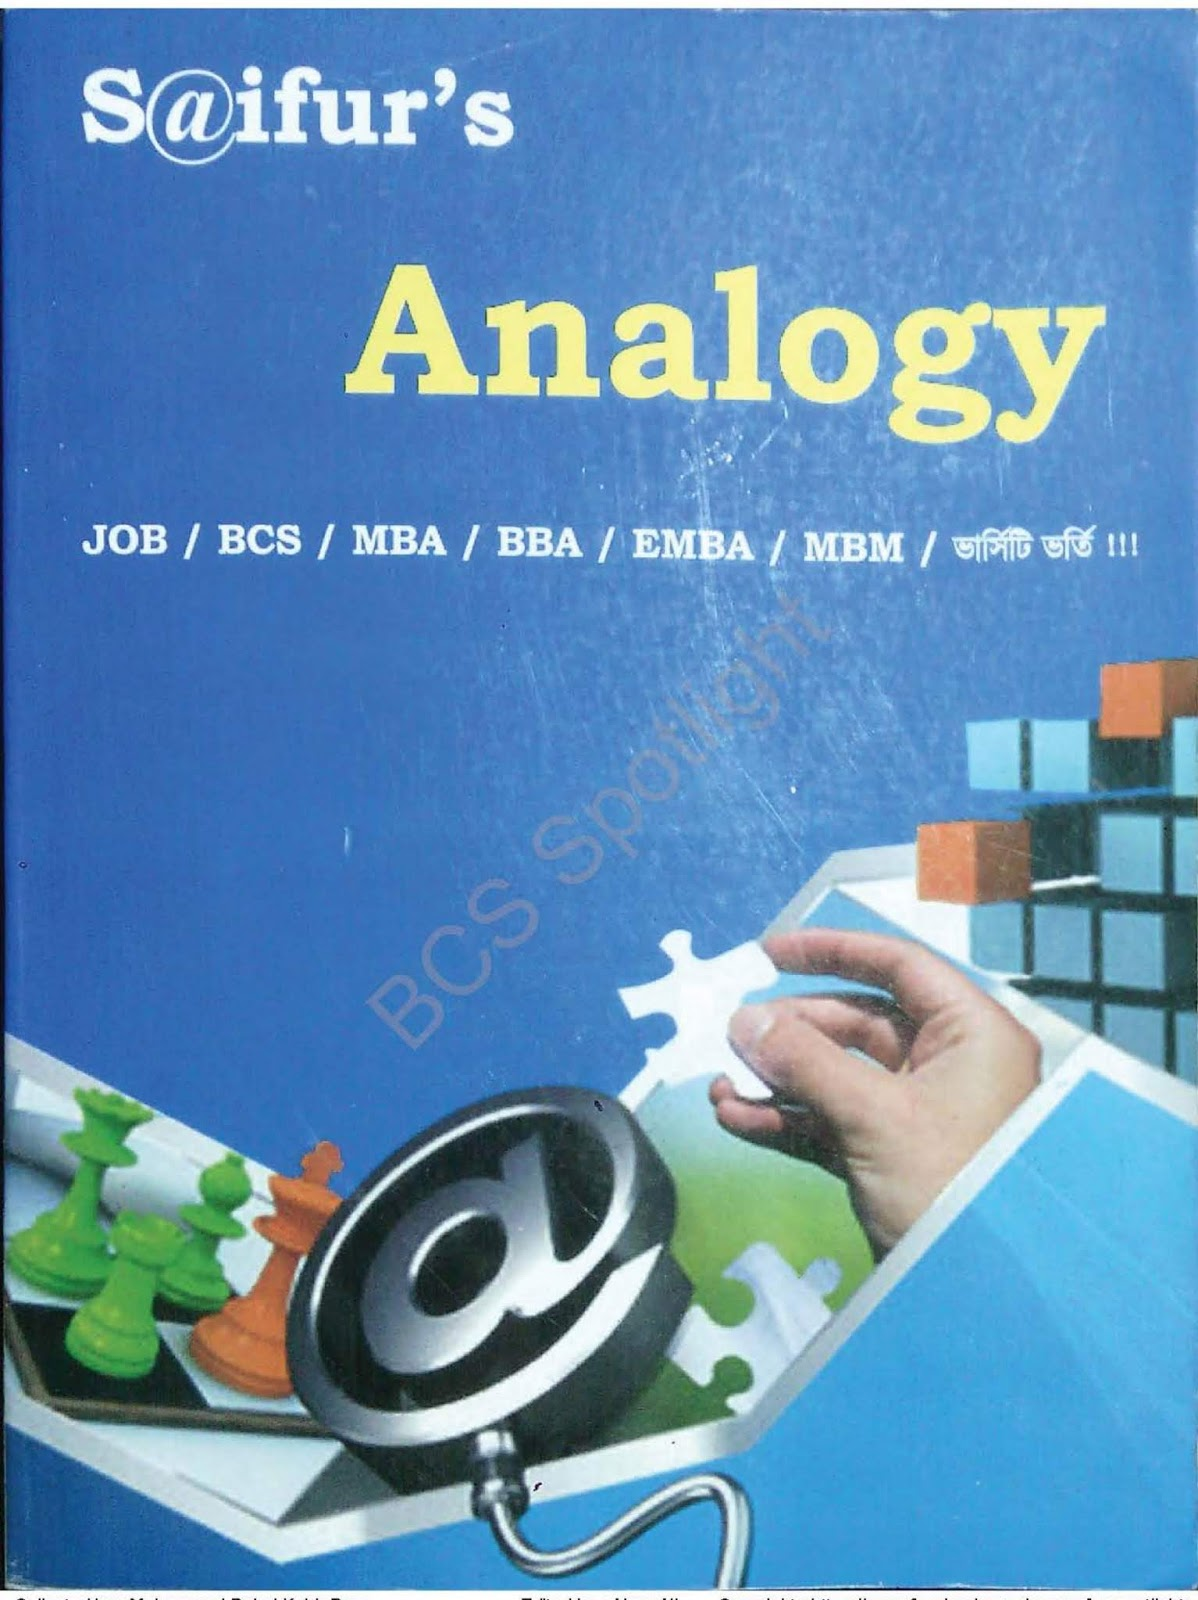 Saifurs Analogy Pdf Download | Saifurs Analogy বিশ্বকোষ